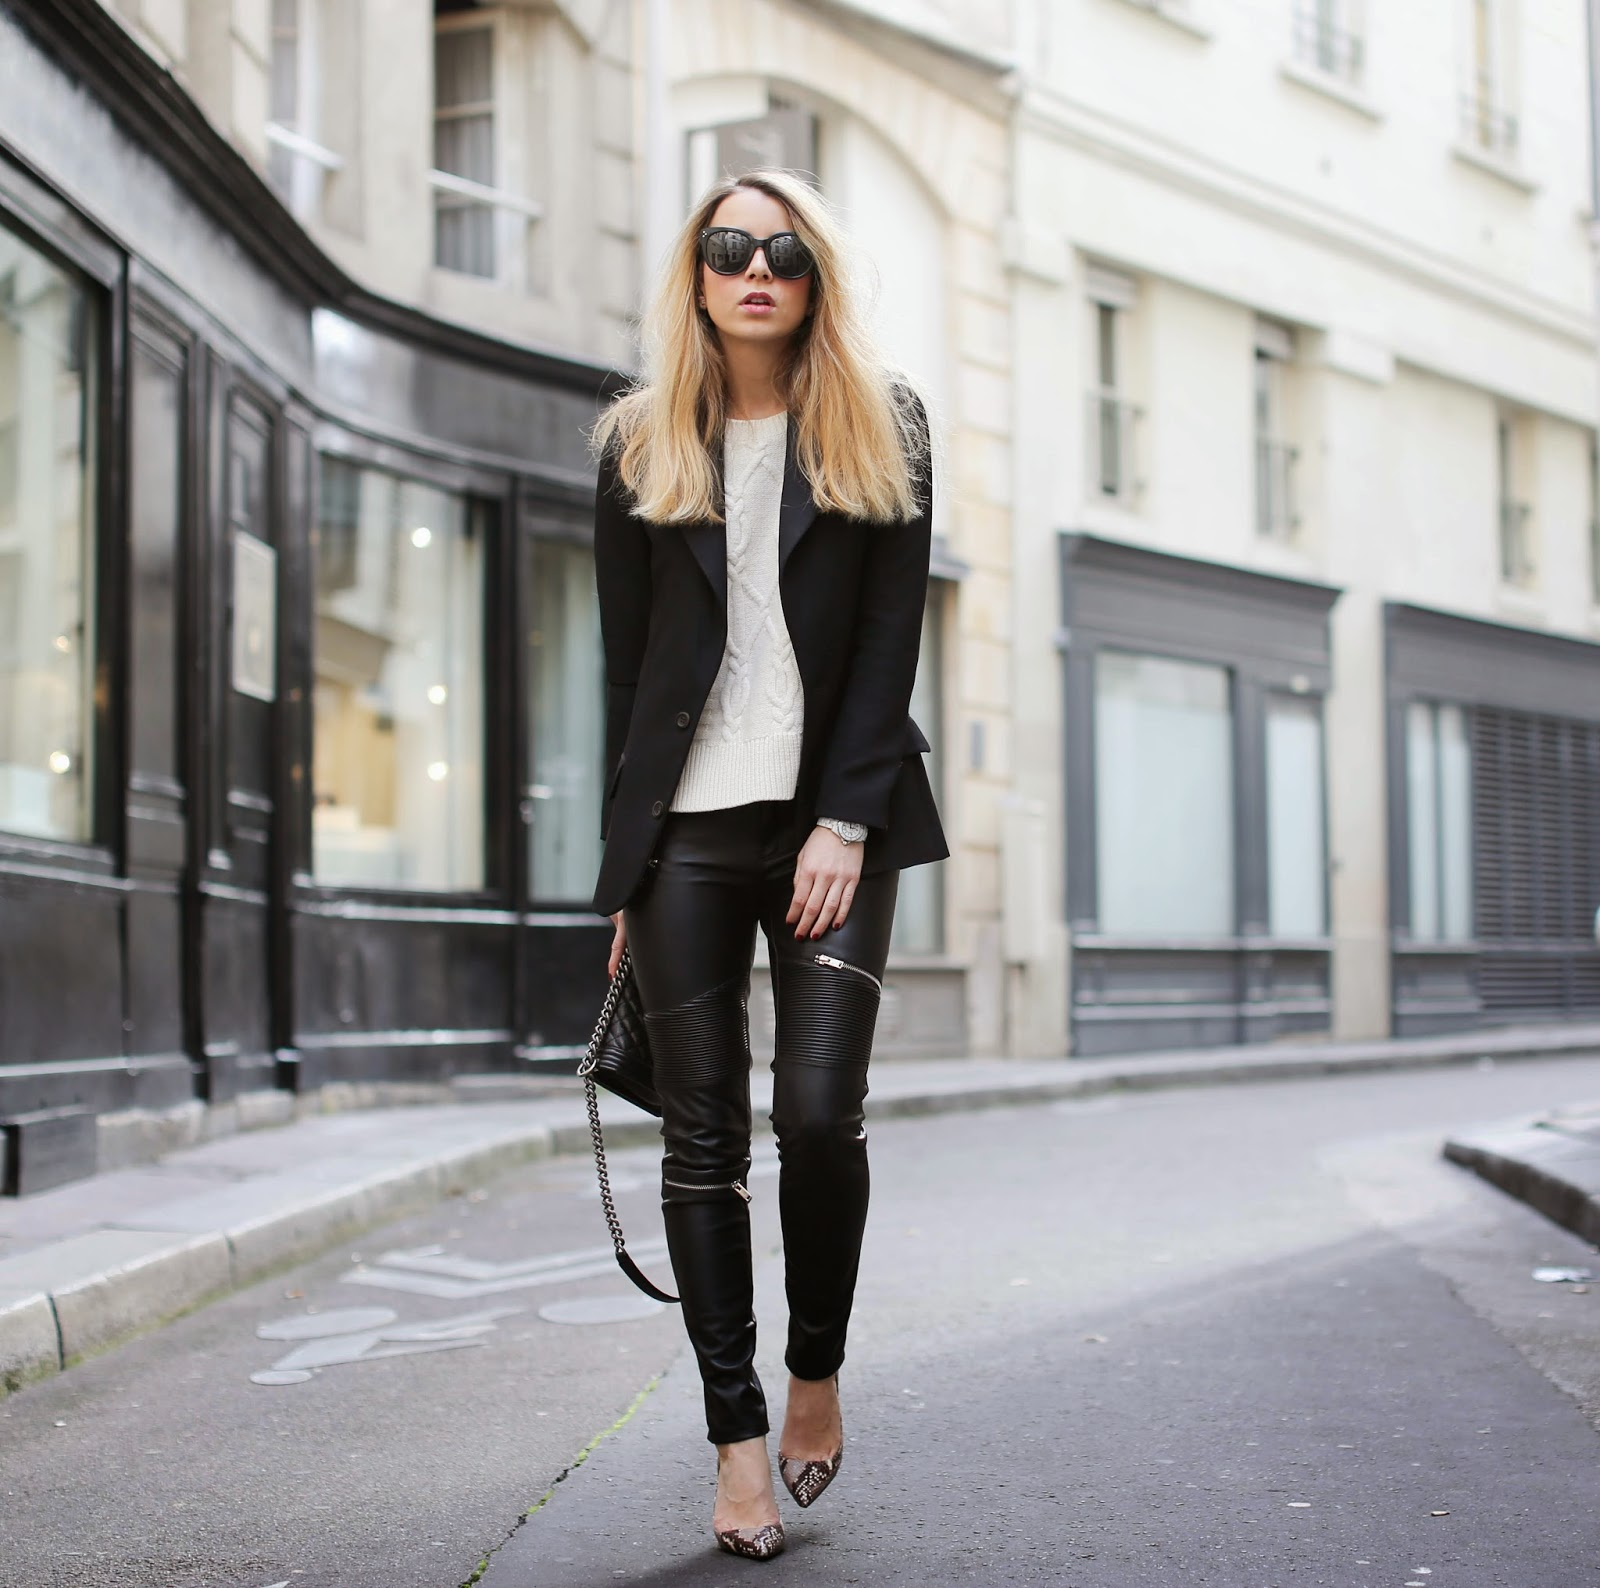 leather pants, cable knit sweater, sandro, zara, vanessa bruno, chanel, python pumps, saint germain, streetstyle, fashion blogger